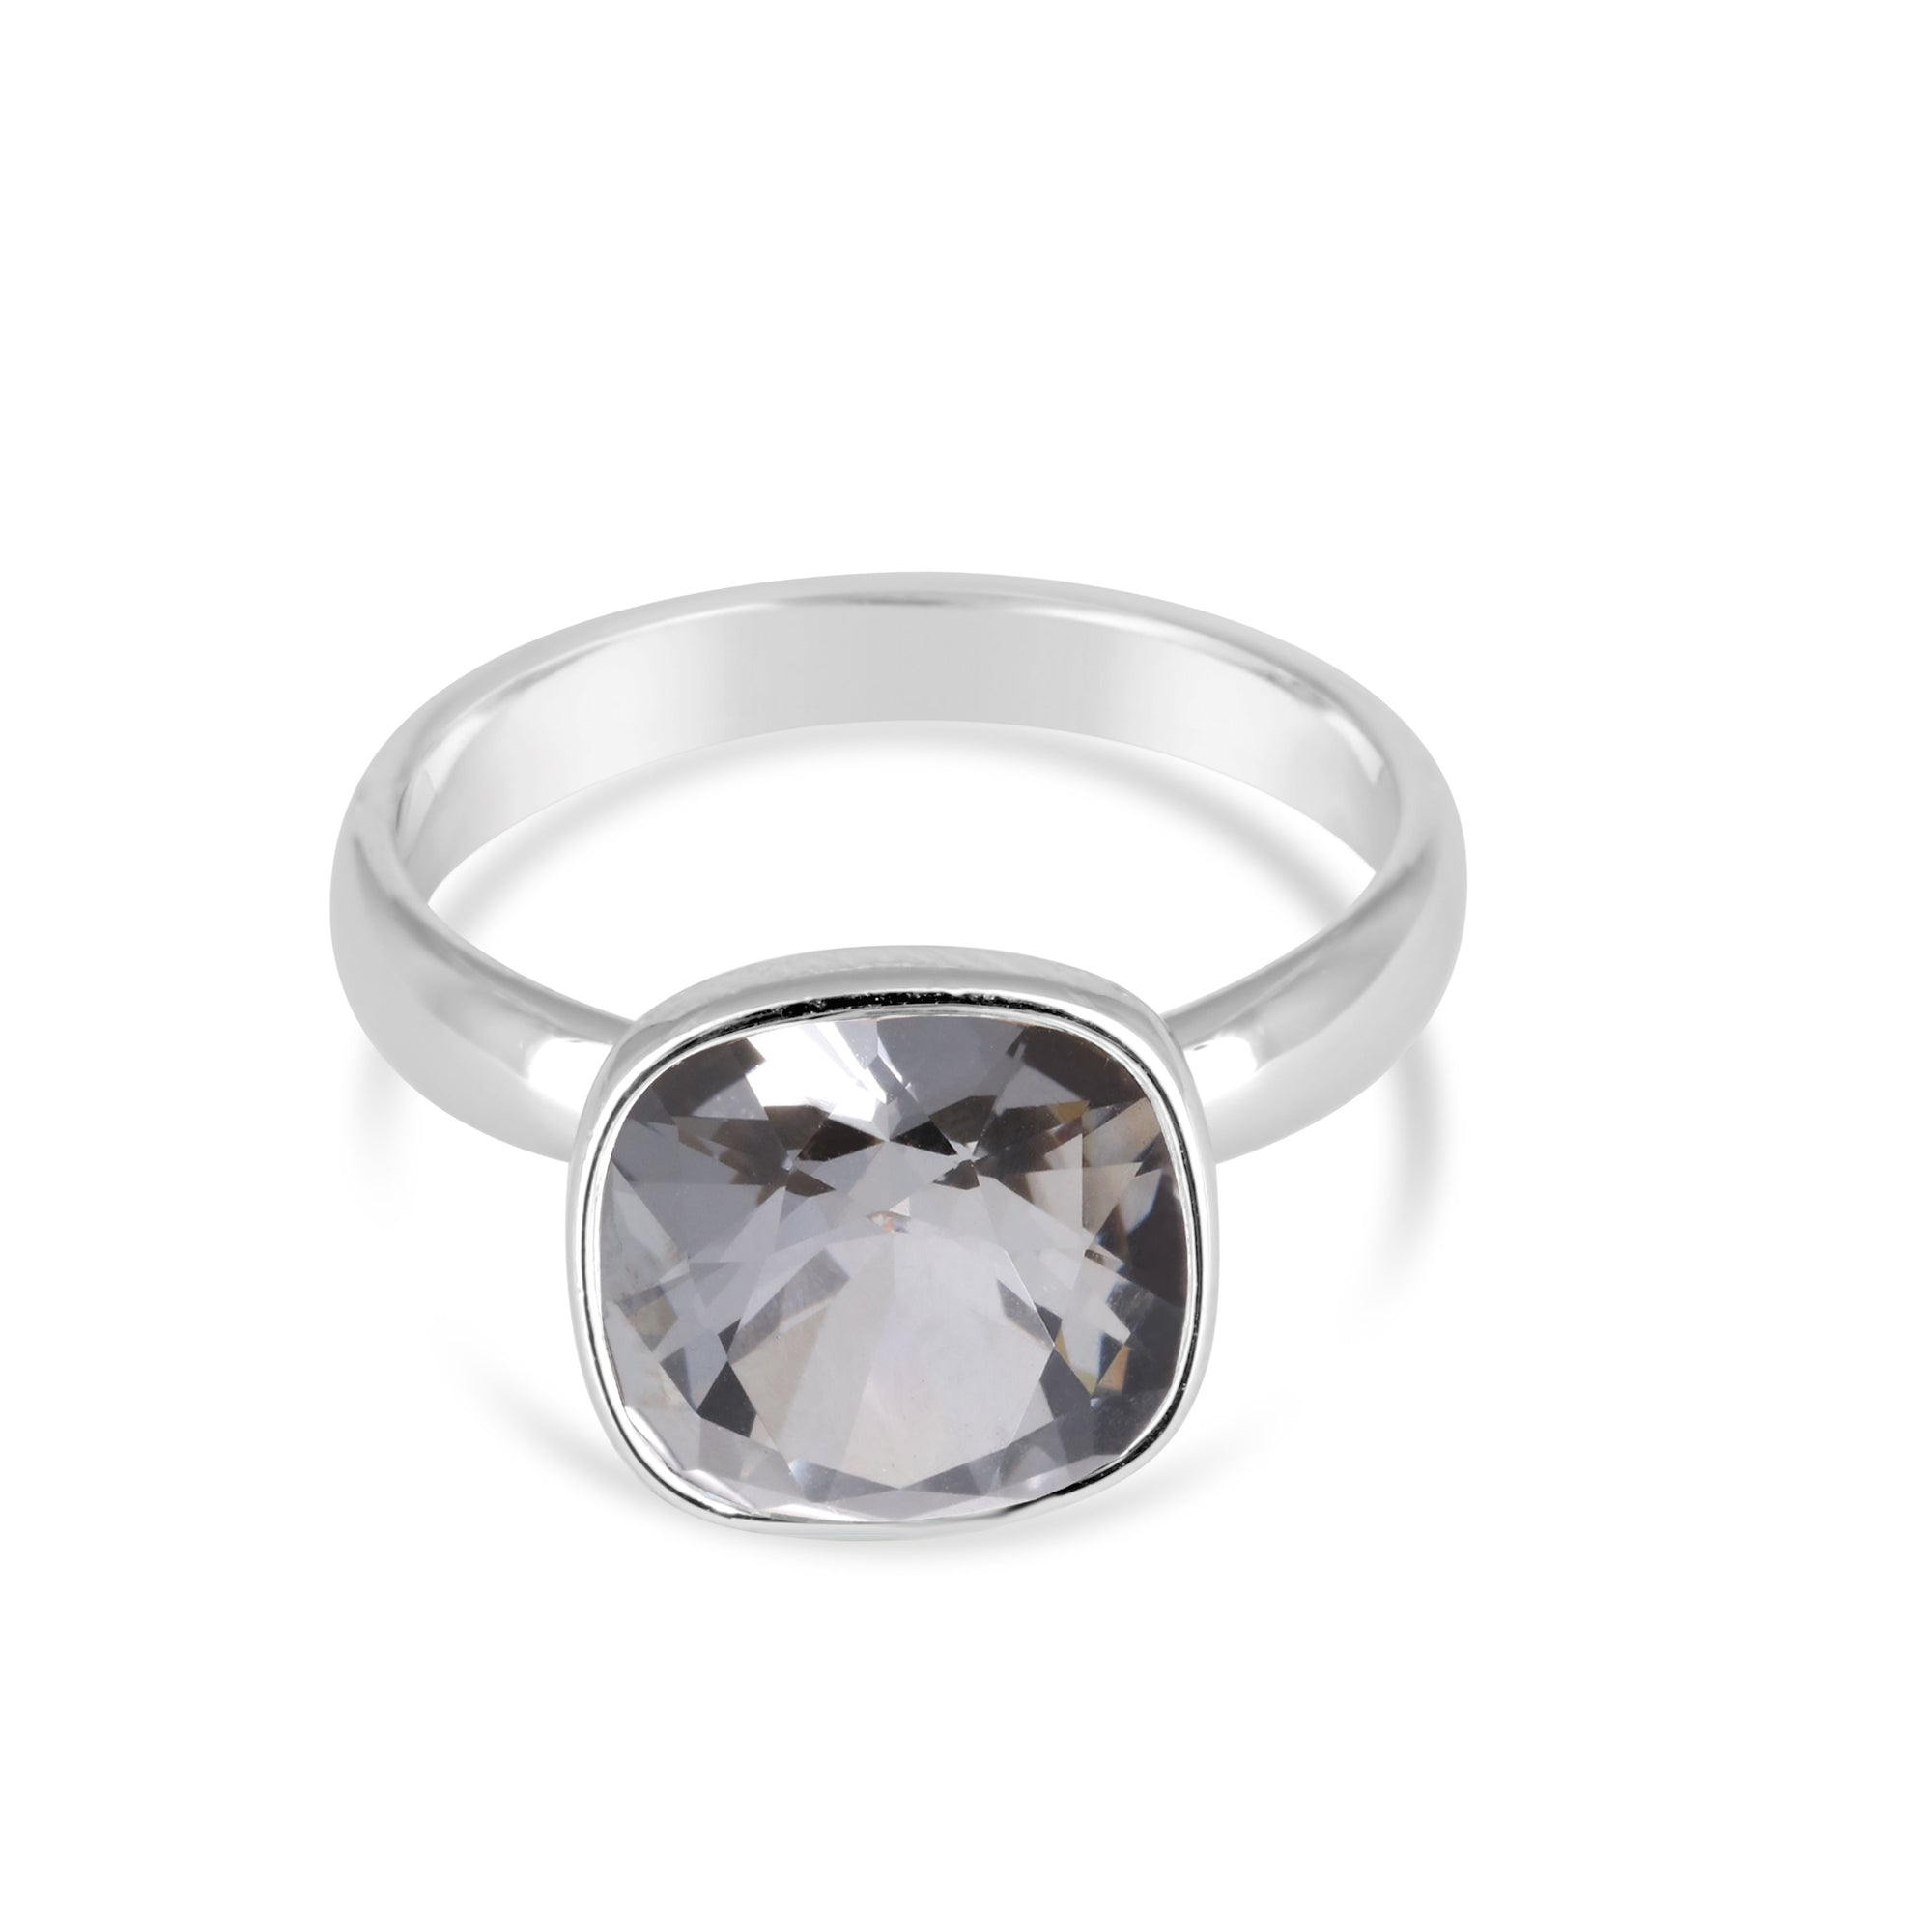 CUSHION SOLITAIRE RING SILVER NIGHT RING - FOREVER - ESSENTIALS - SILVER NIGHT 001